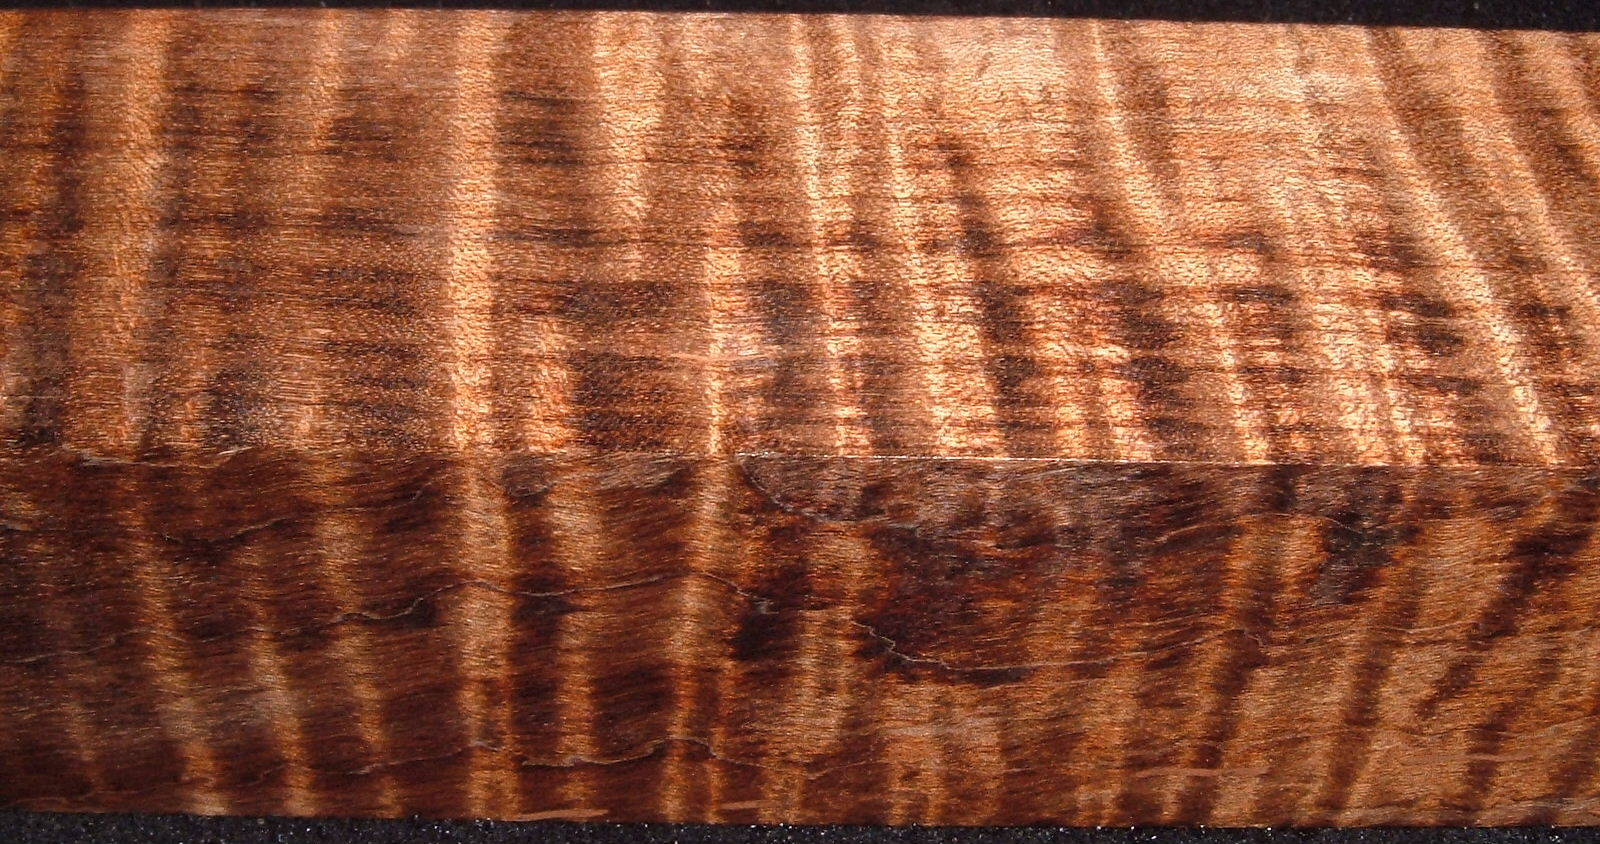 Z323, 1-3/4x1-3/4x7-1/4 ,Brown, Curly Tiger Maple Dyed Stabilized, wood turning block